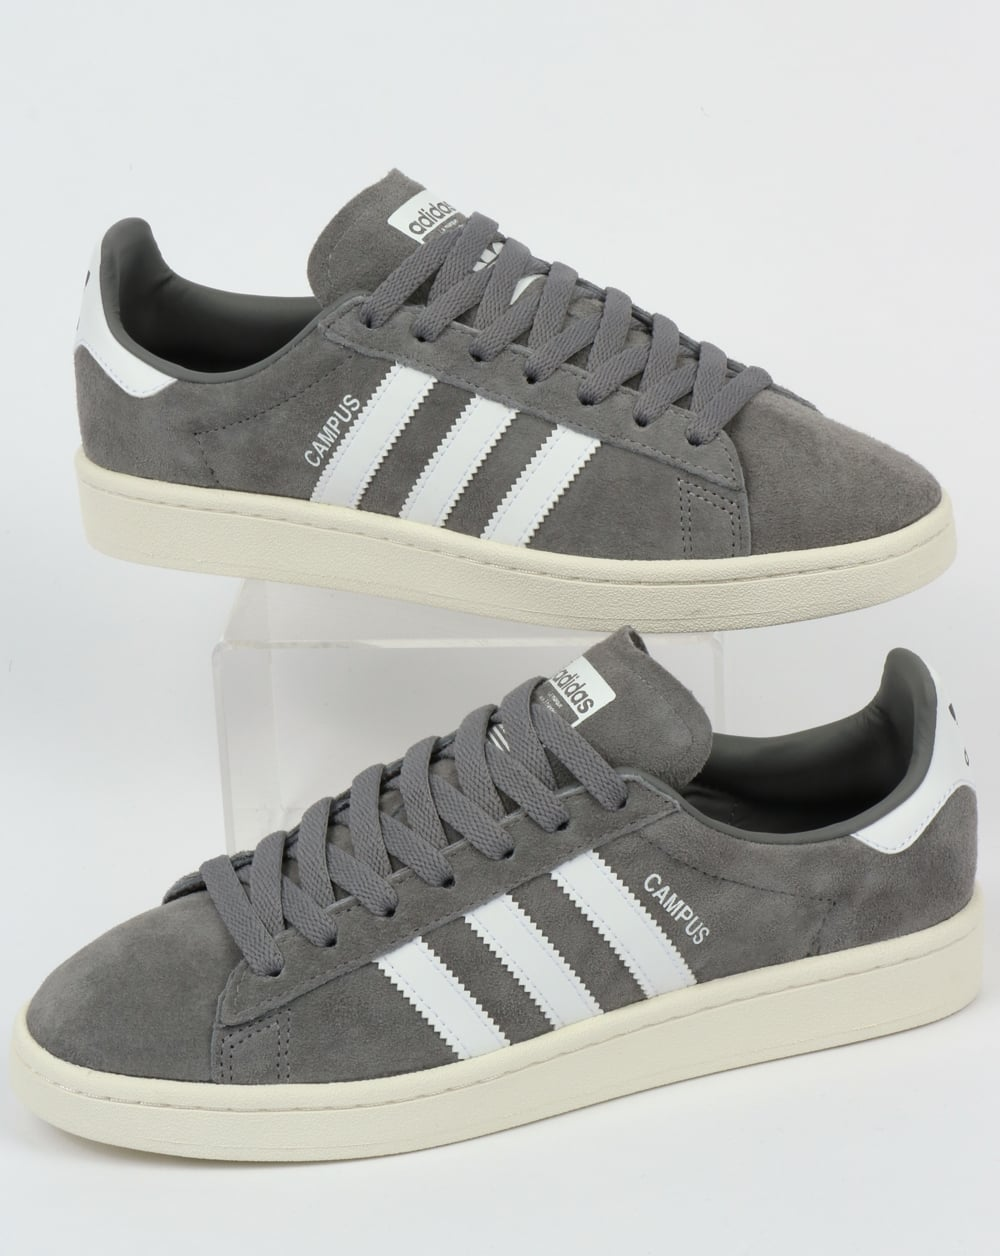 b40ecfeeb19c adidas Trainers Adidas Campus Trainers Grey White